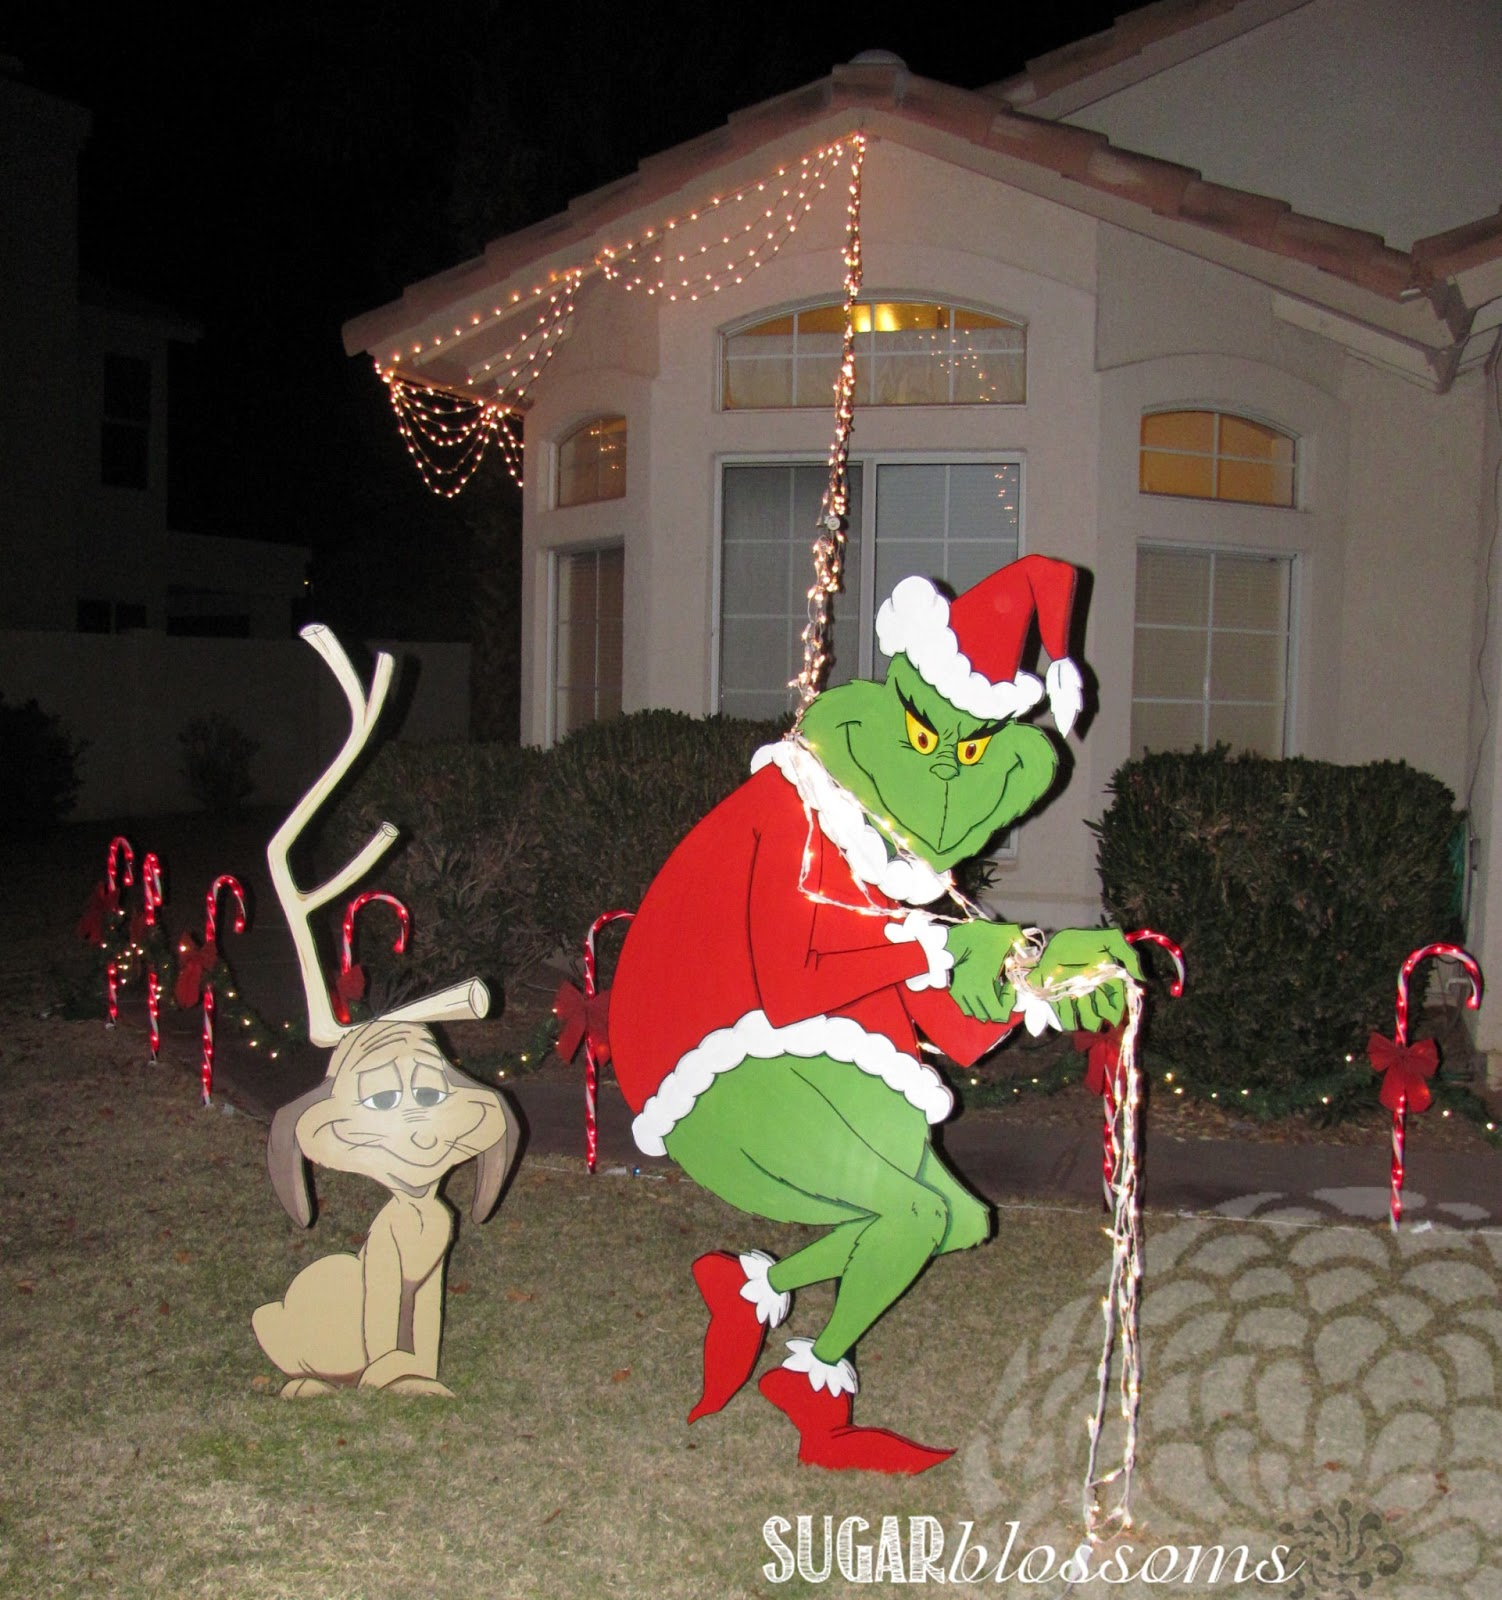 Christmas Grinch Decorations.Christmas Decoration Grinch Stealing Lights Ideas